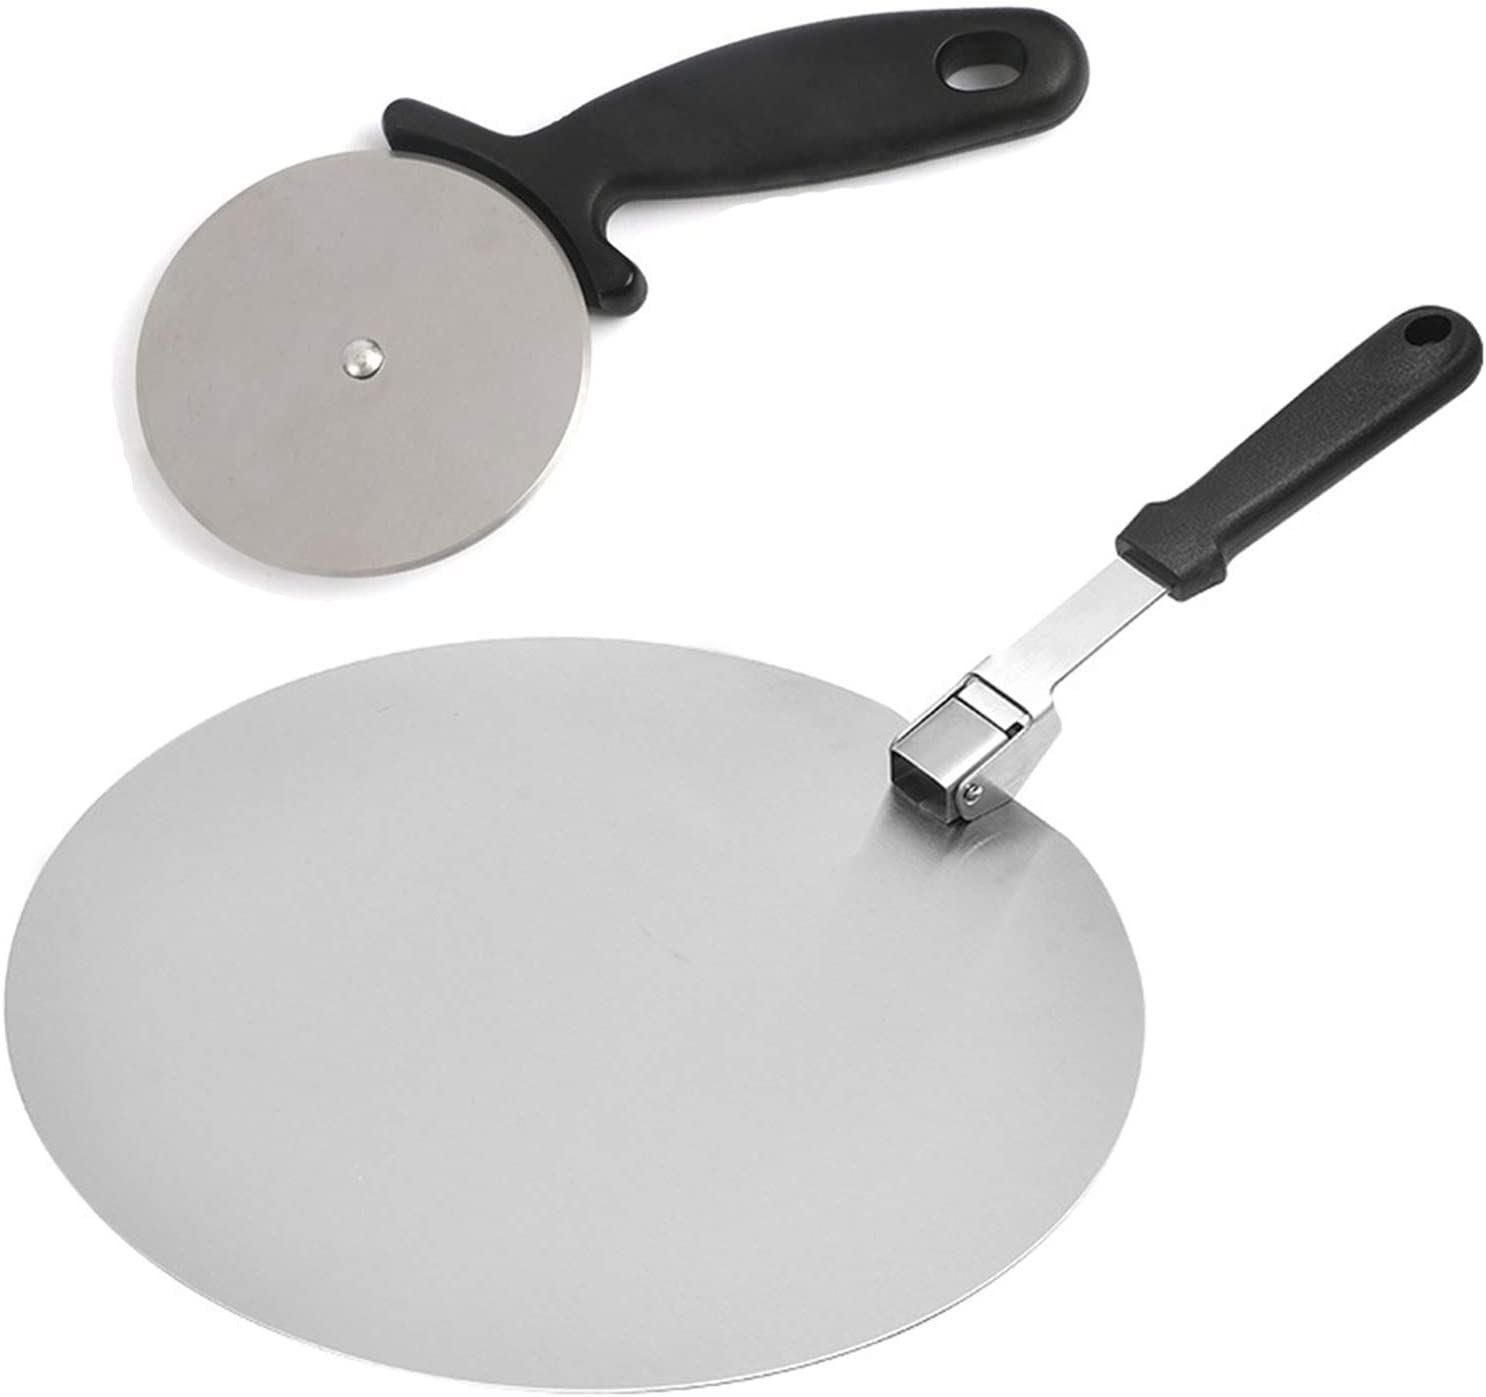 LVGADR Pizza Peels and Pizza Wheel, Round 12-Inch Baking Pizza Paddle Peel Shovel, Heat-Resistant Foldable Ergonomic Handle Oven Tools ,For Indoor and Outdoor Pastry, Pizza Spatula Cake Lifter(Black)